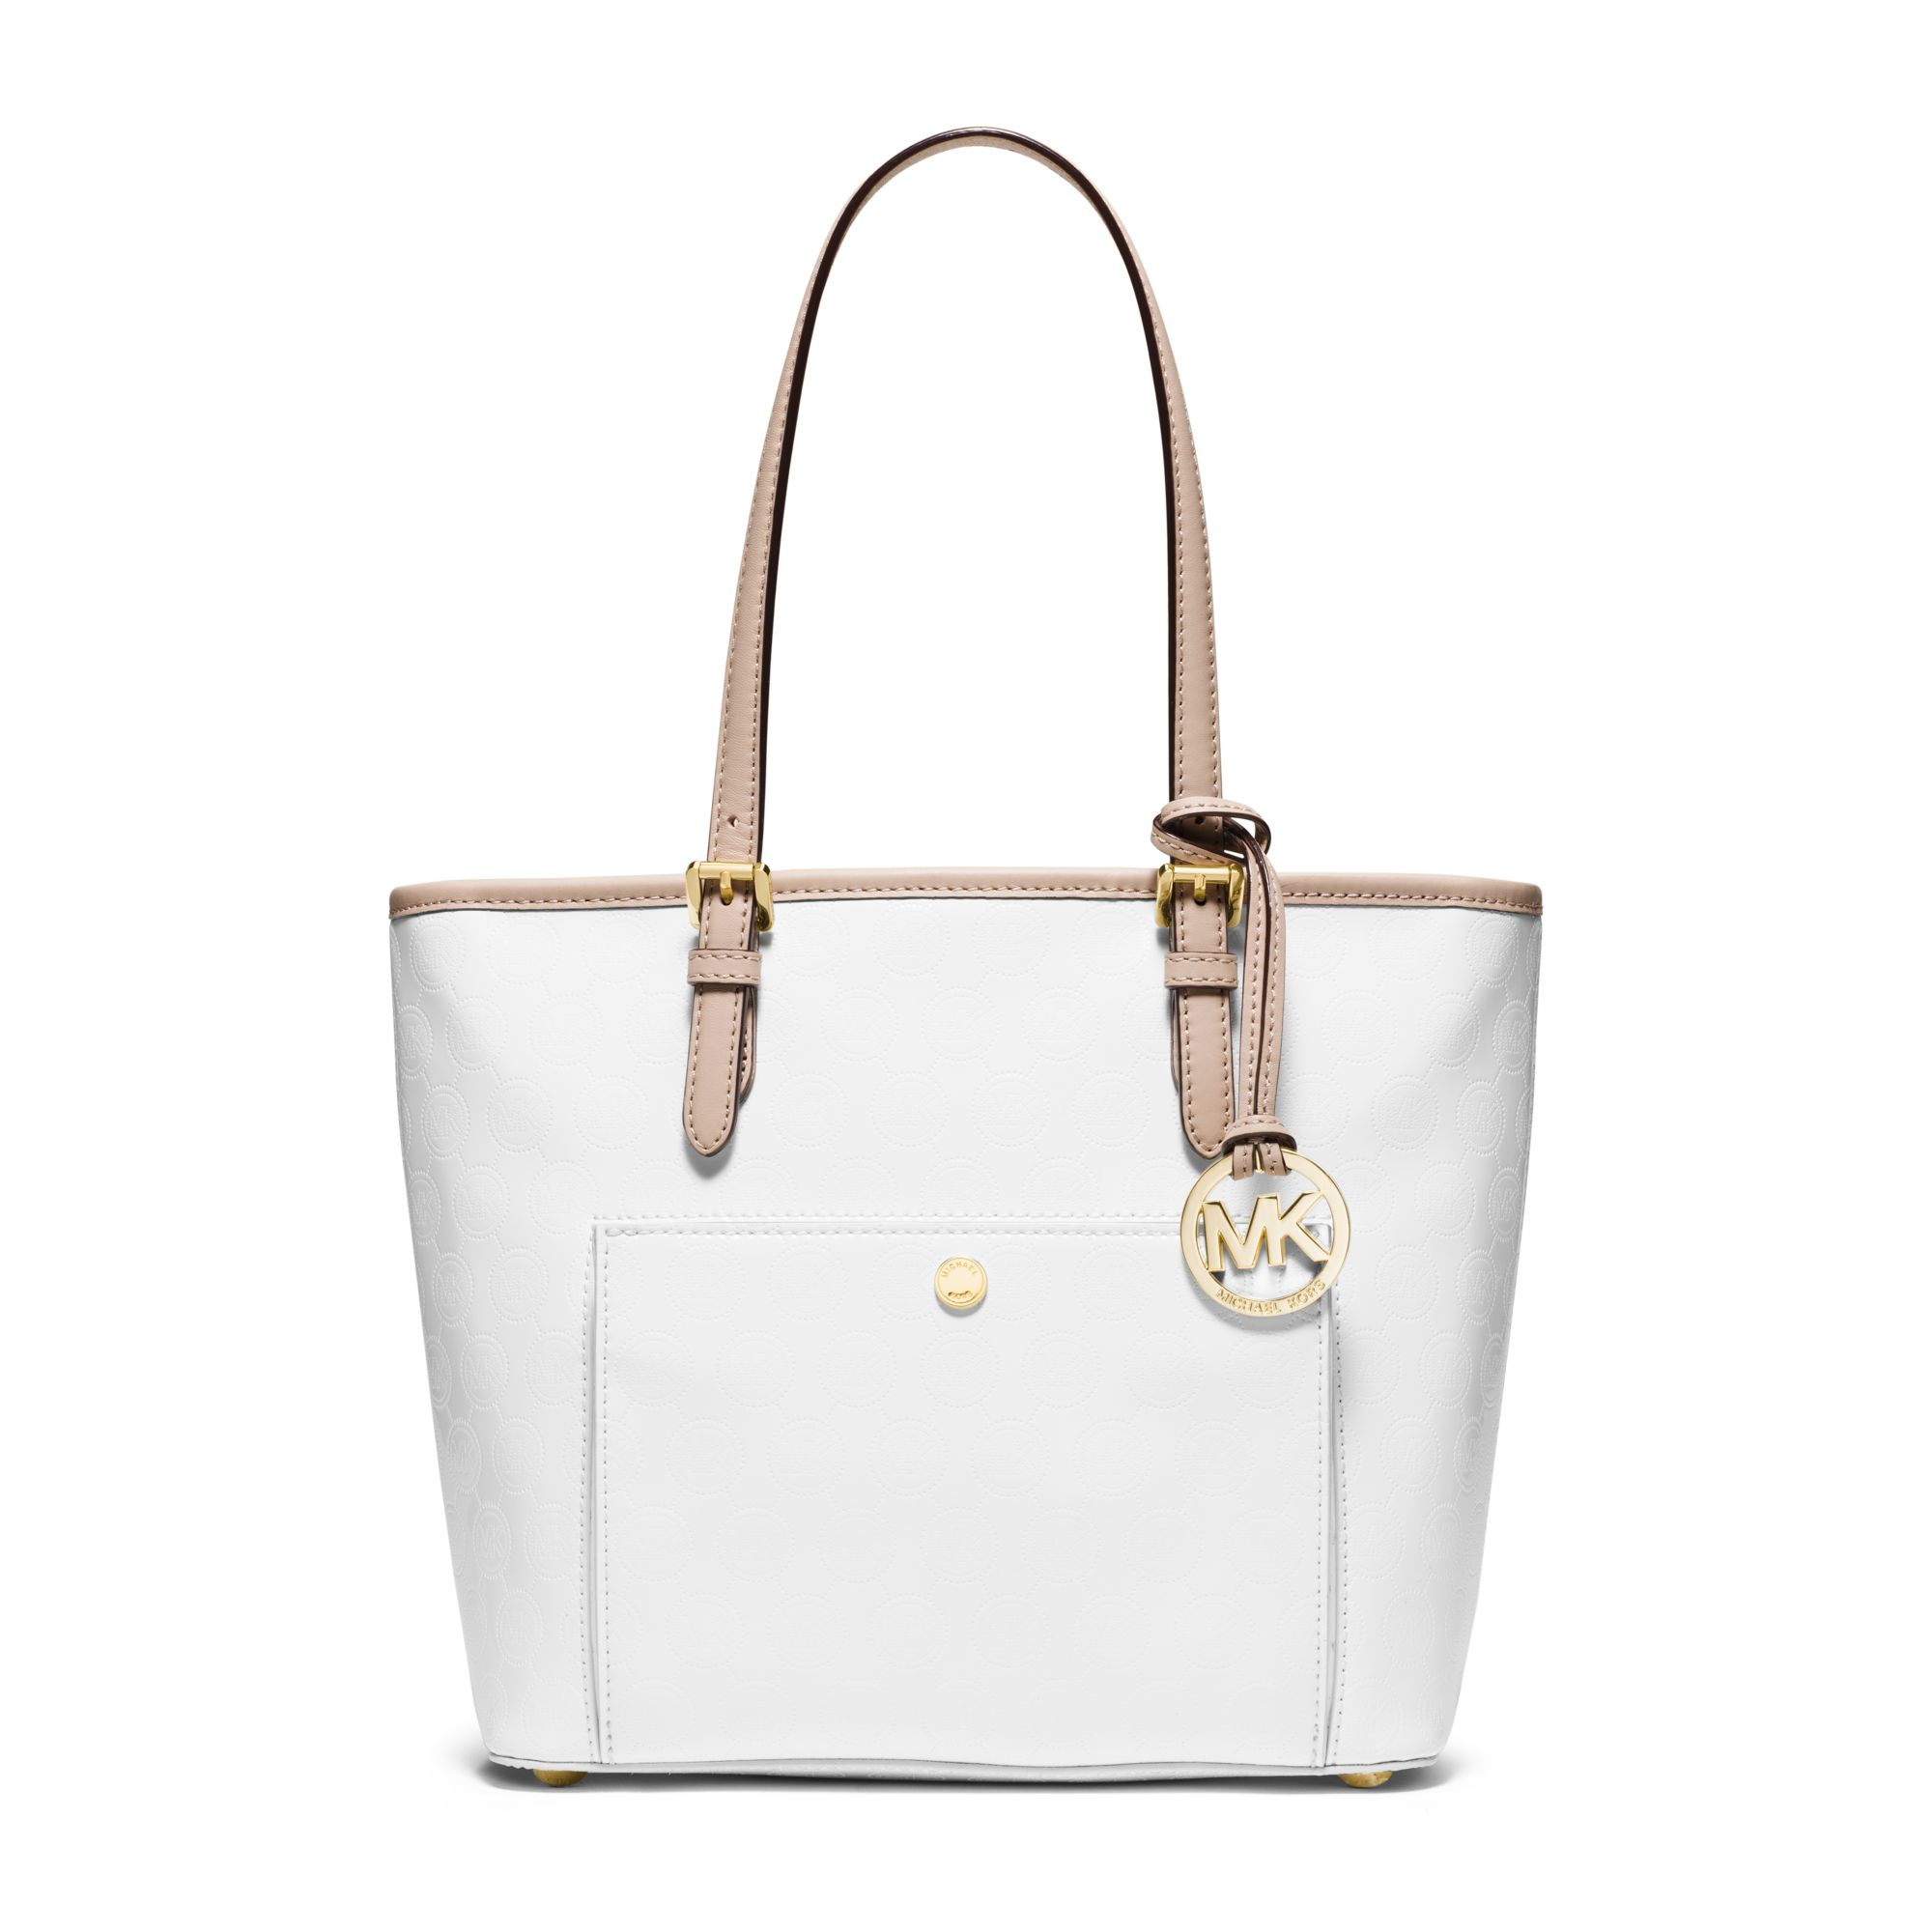 f8ef92e494a6 ... sweden lyst michael kors jet set travel medium metallic leather tote in  white ef24c 5598f